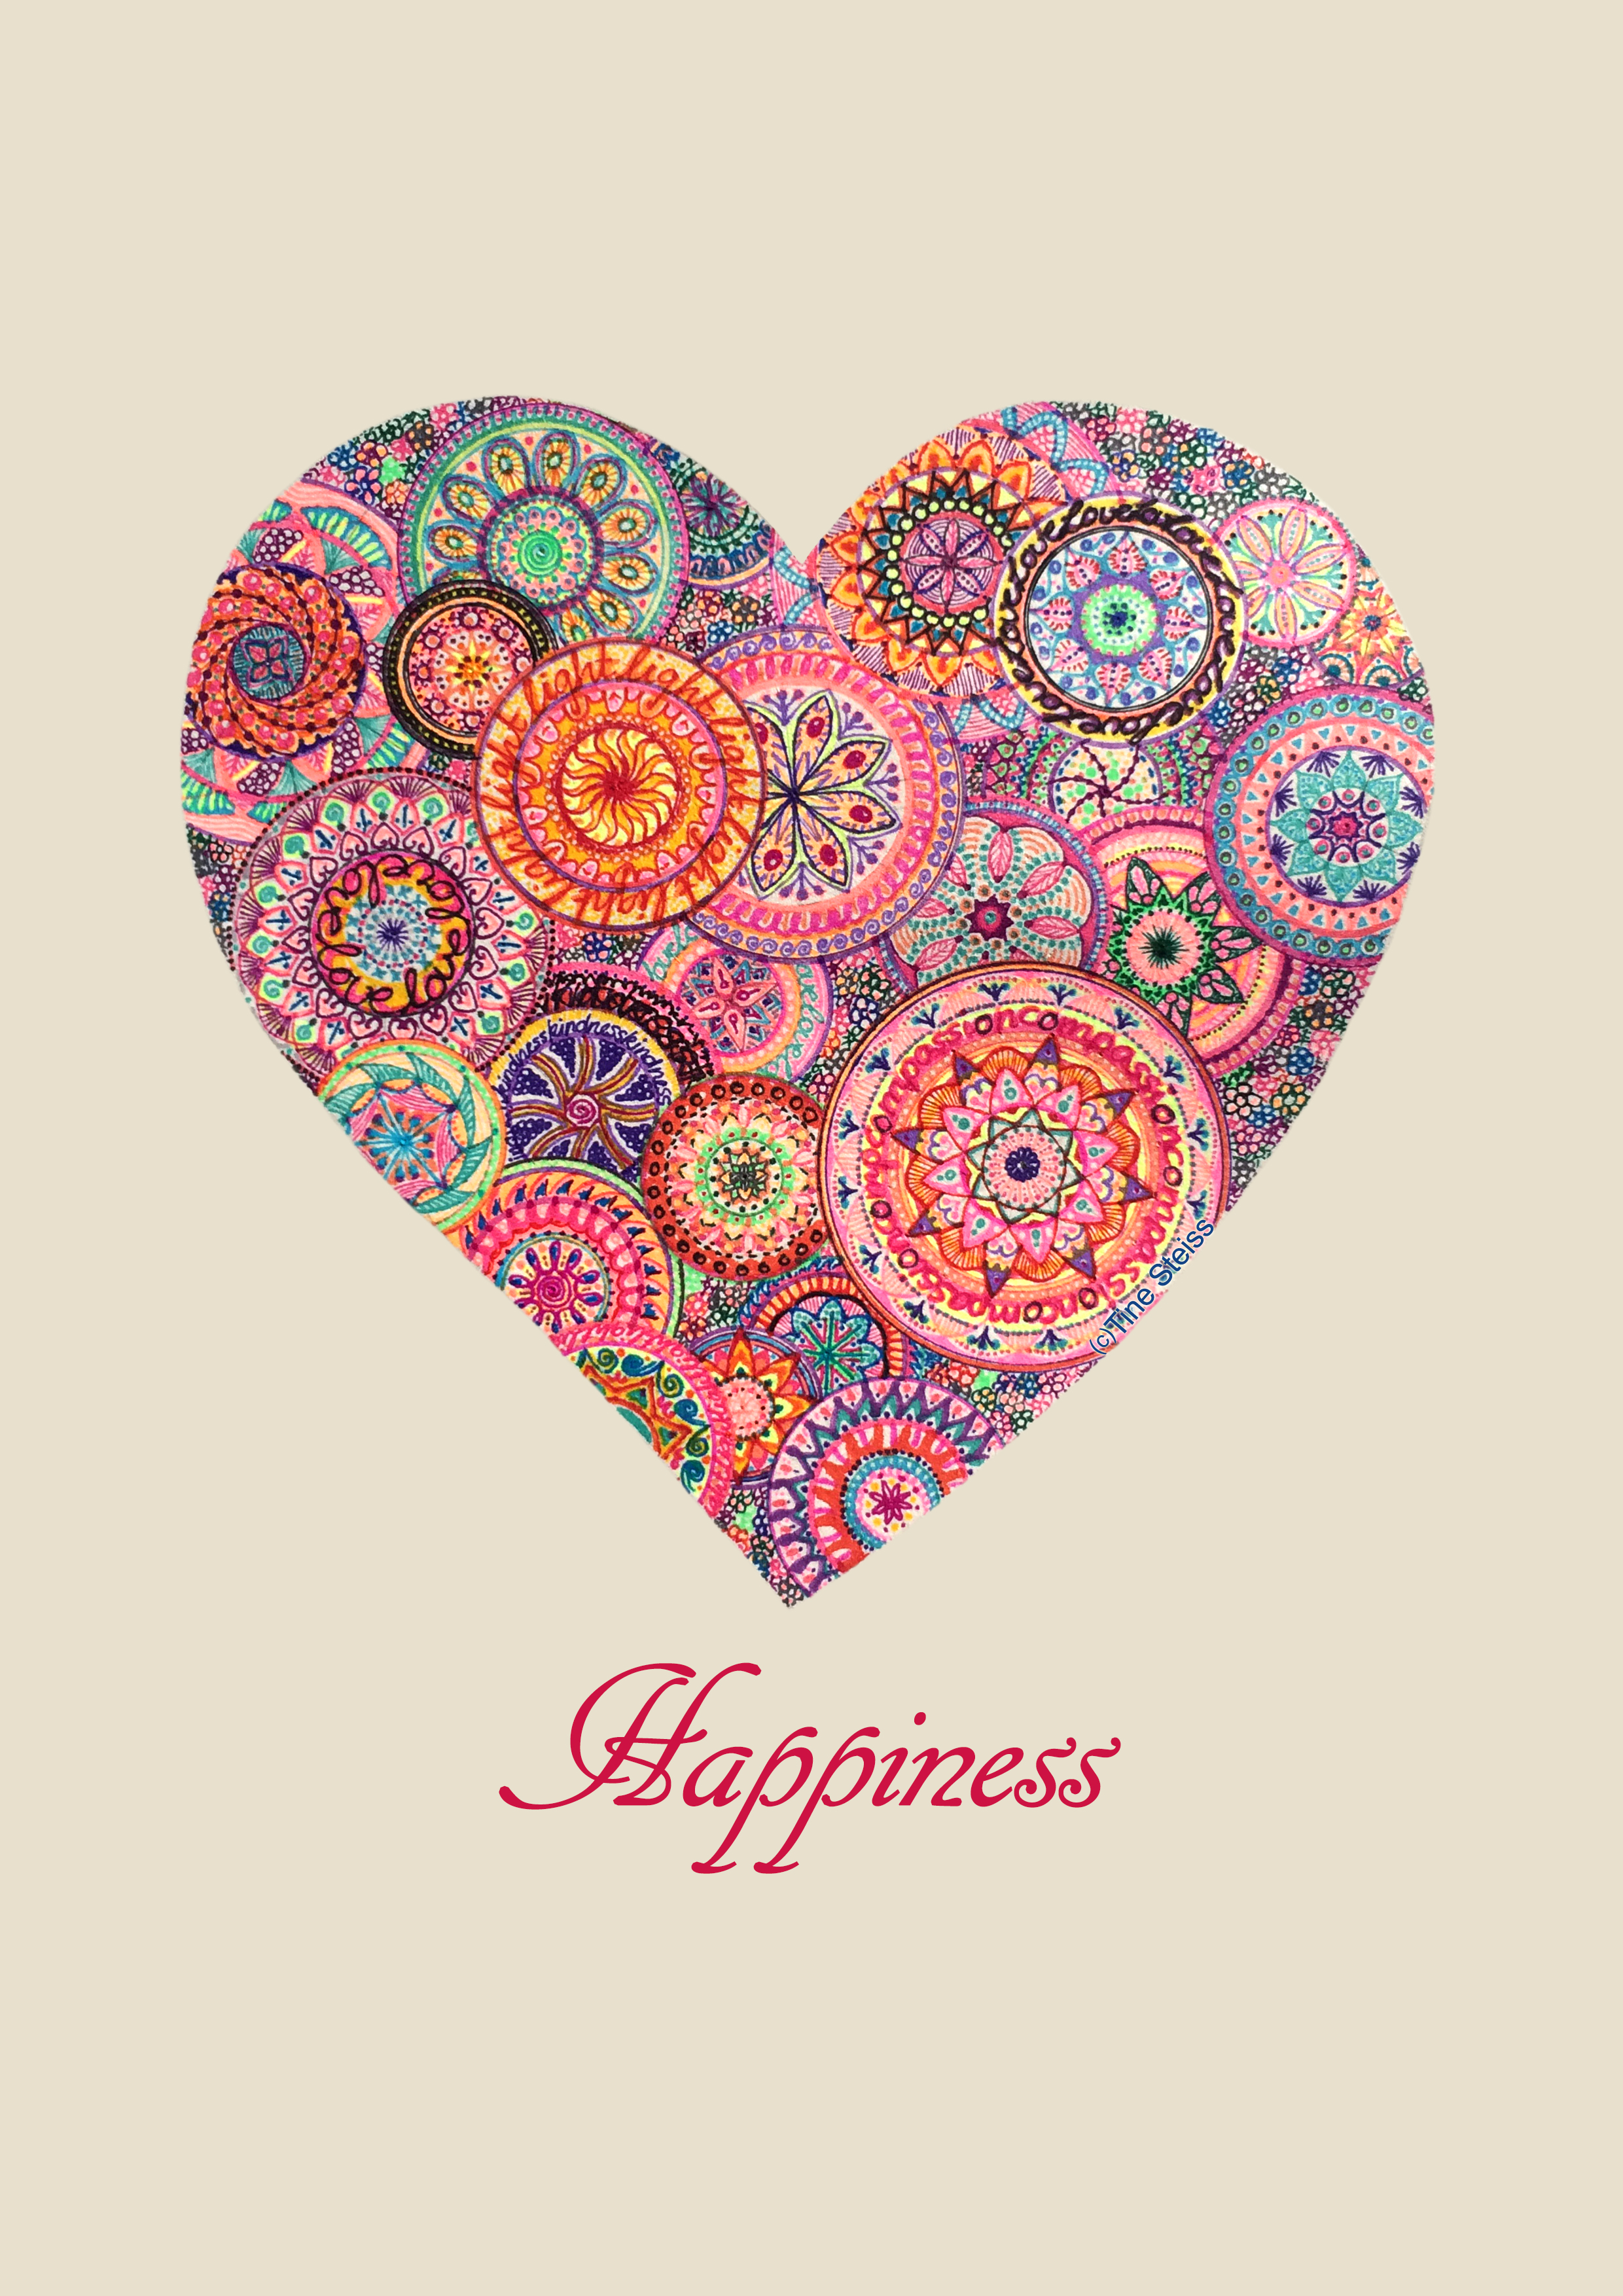 happiness heart mandala free printout artist tine steiss for happiness.org